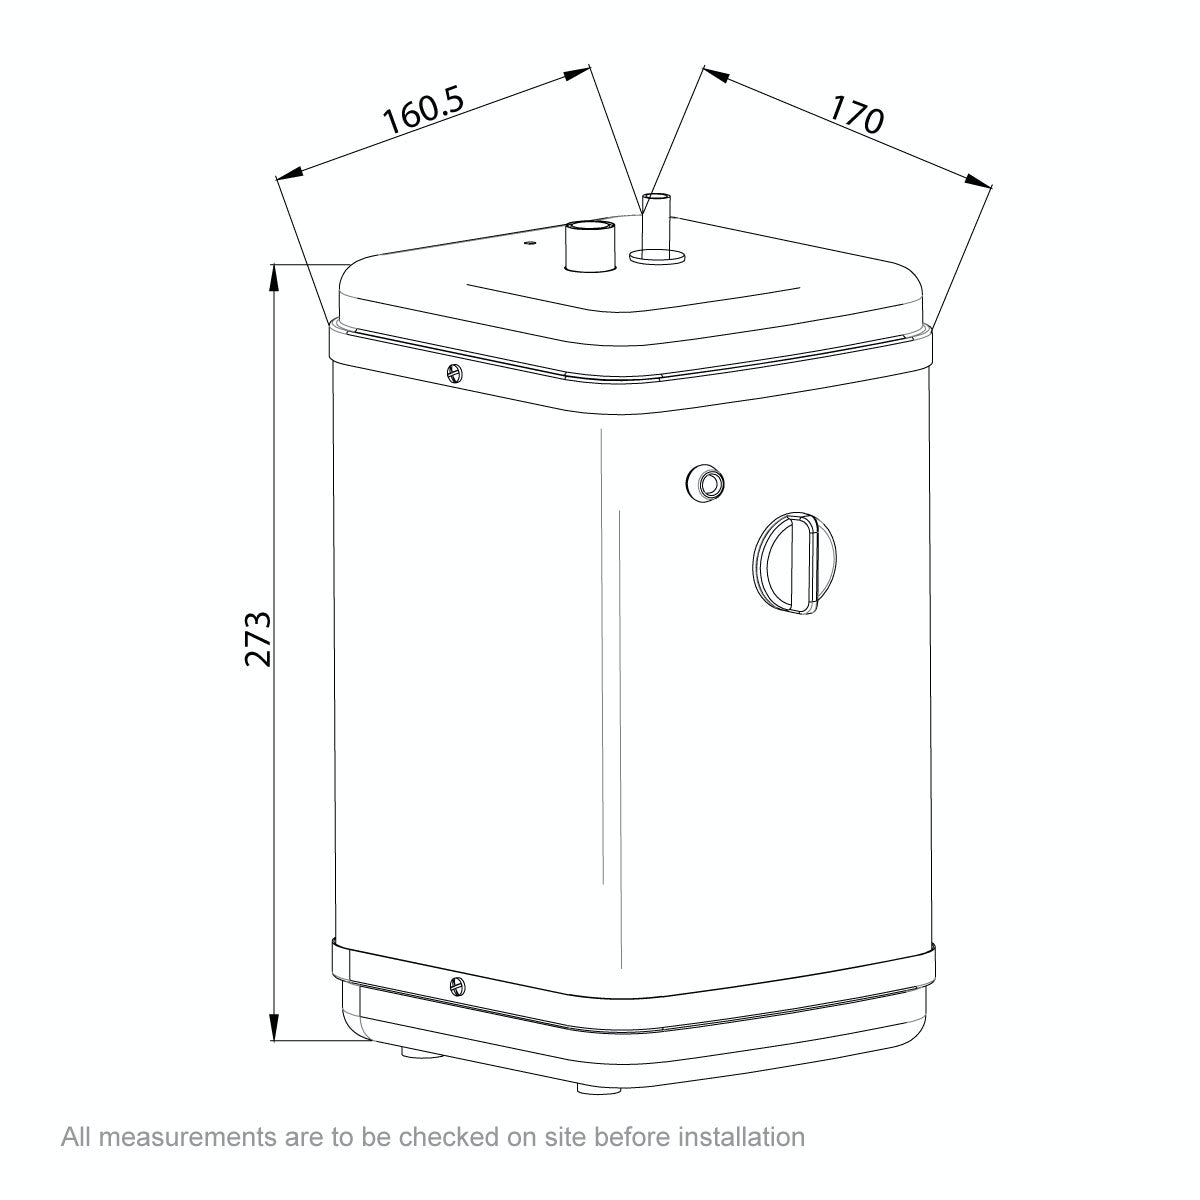 Dimensions for Ready Hot Two way boiling water tap with manual boiler